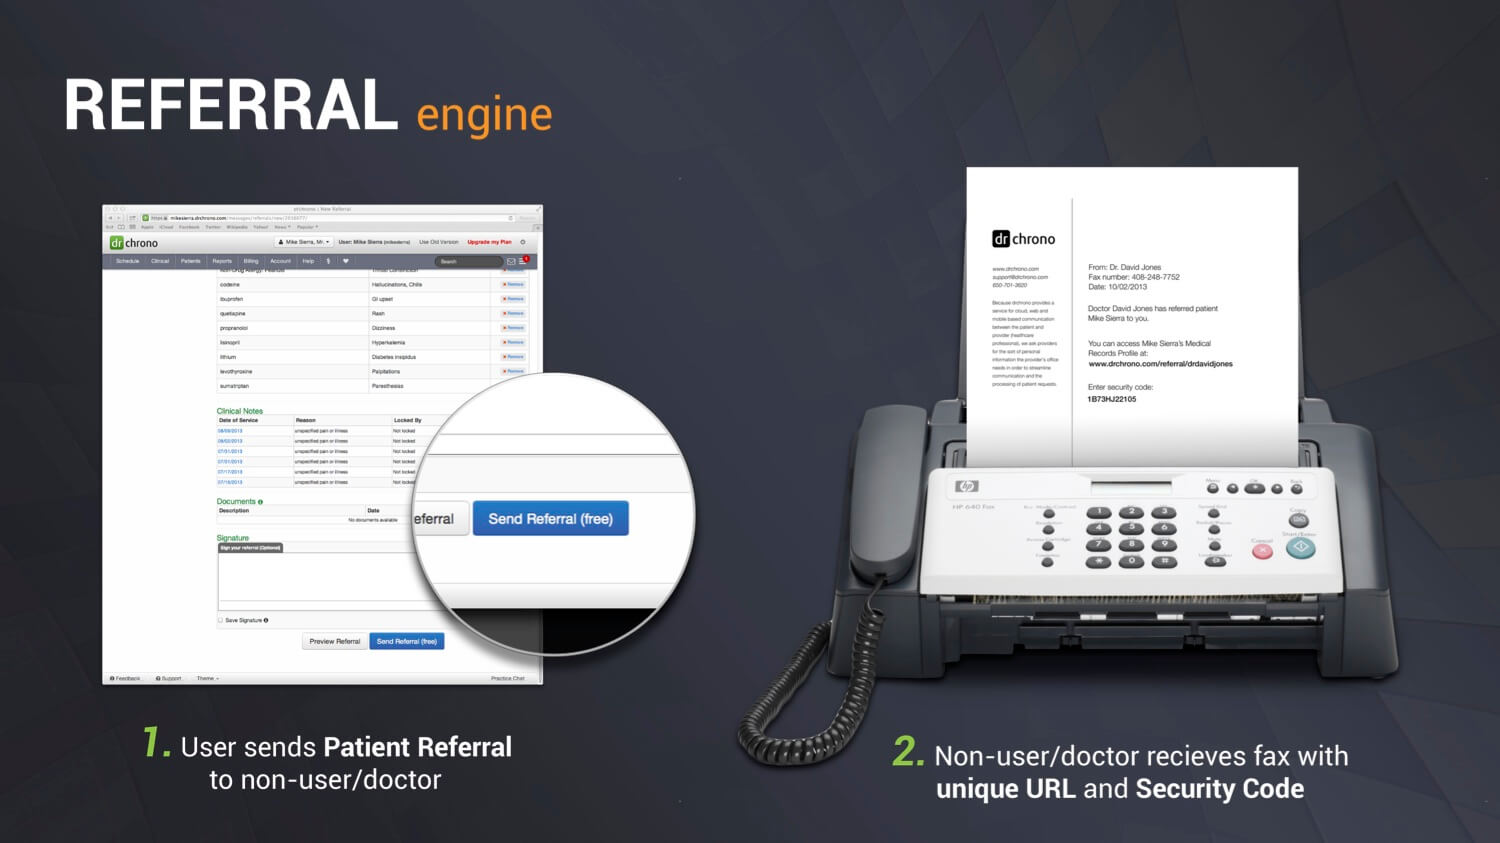 Step 1 to EHR Patient Referrals